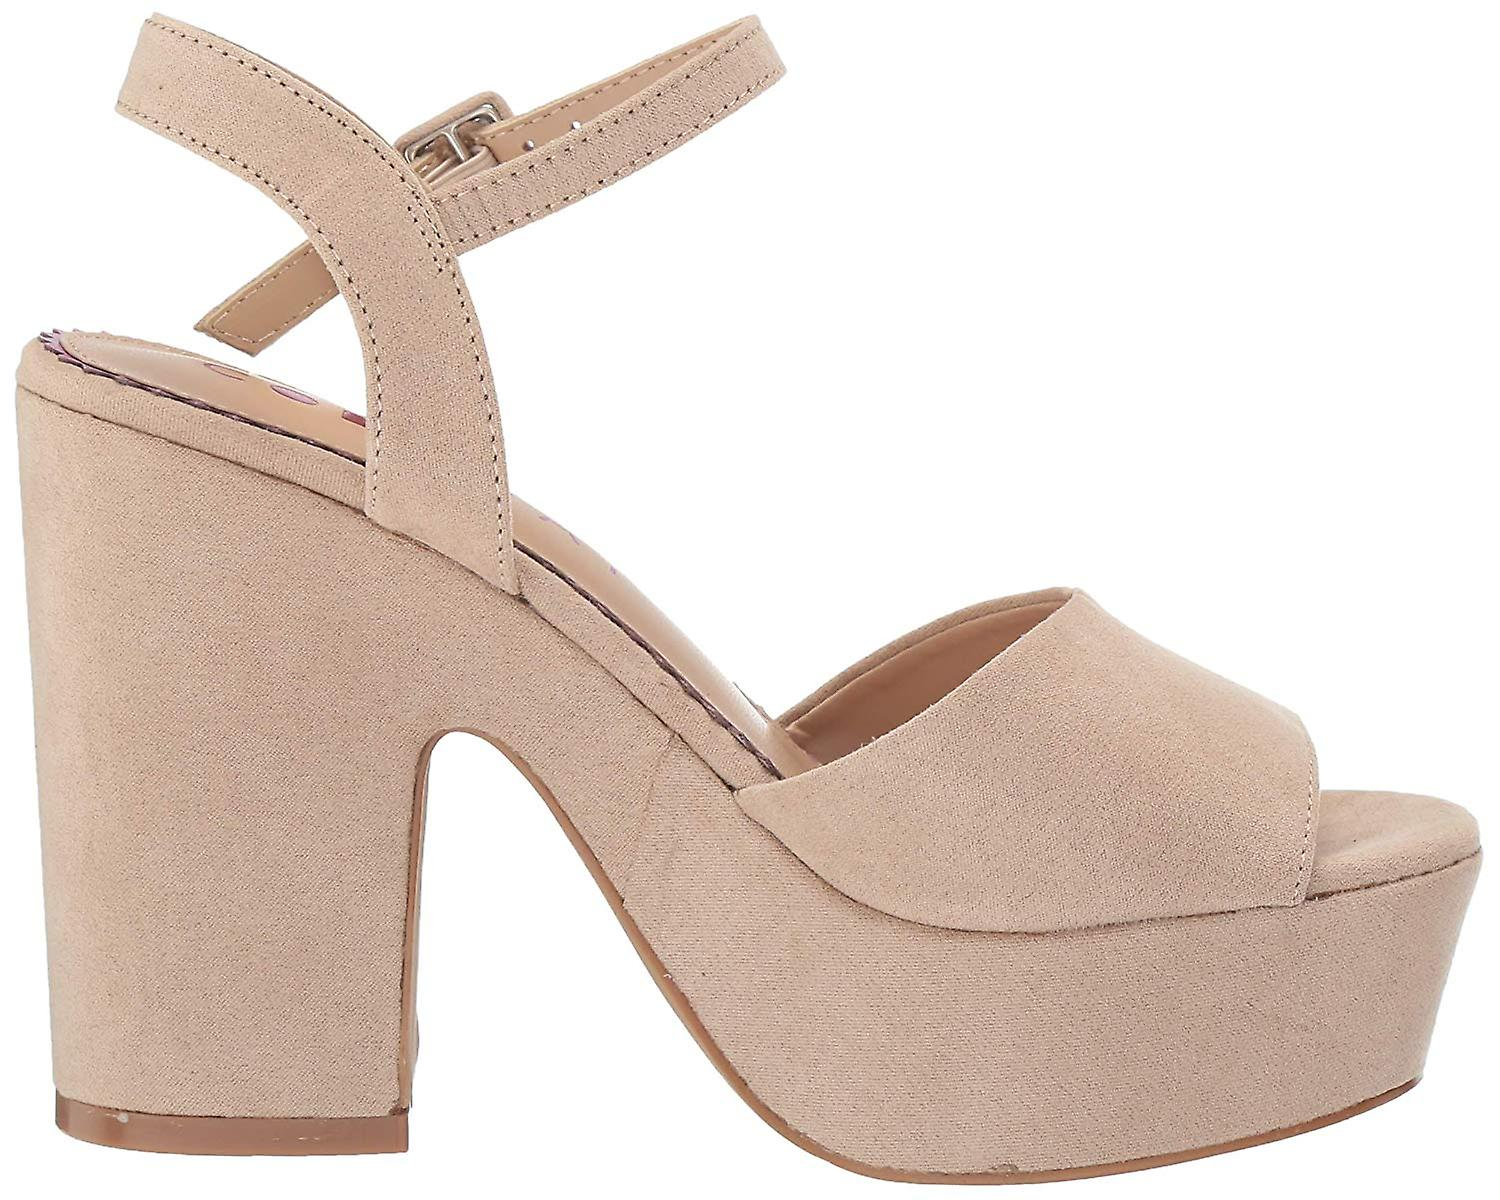 Coolway Womens Crys Suede Peep Toe Casual Ankle Strap Sandals